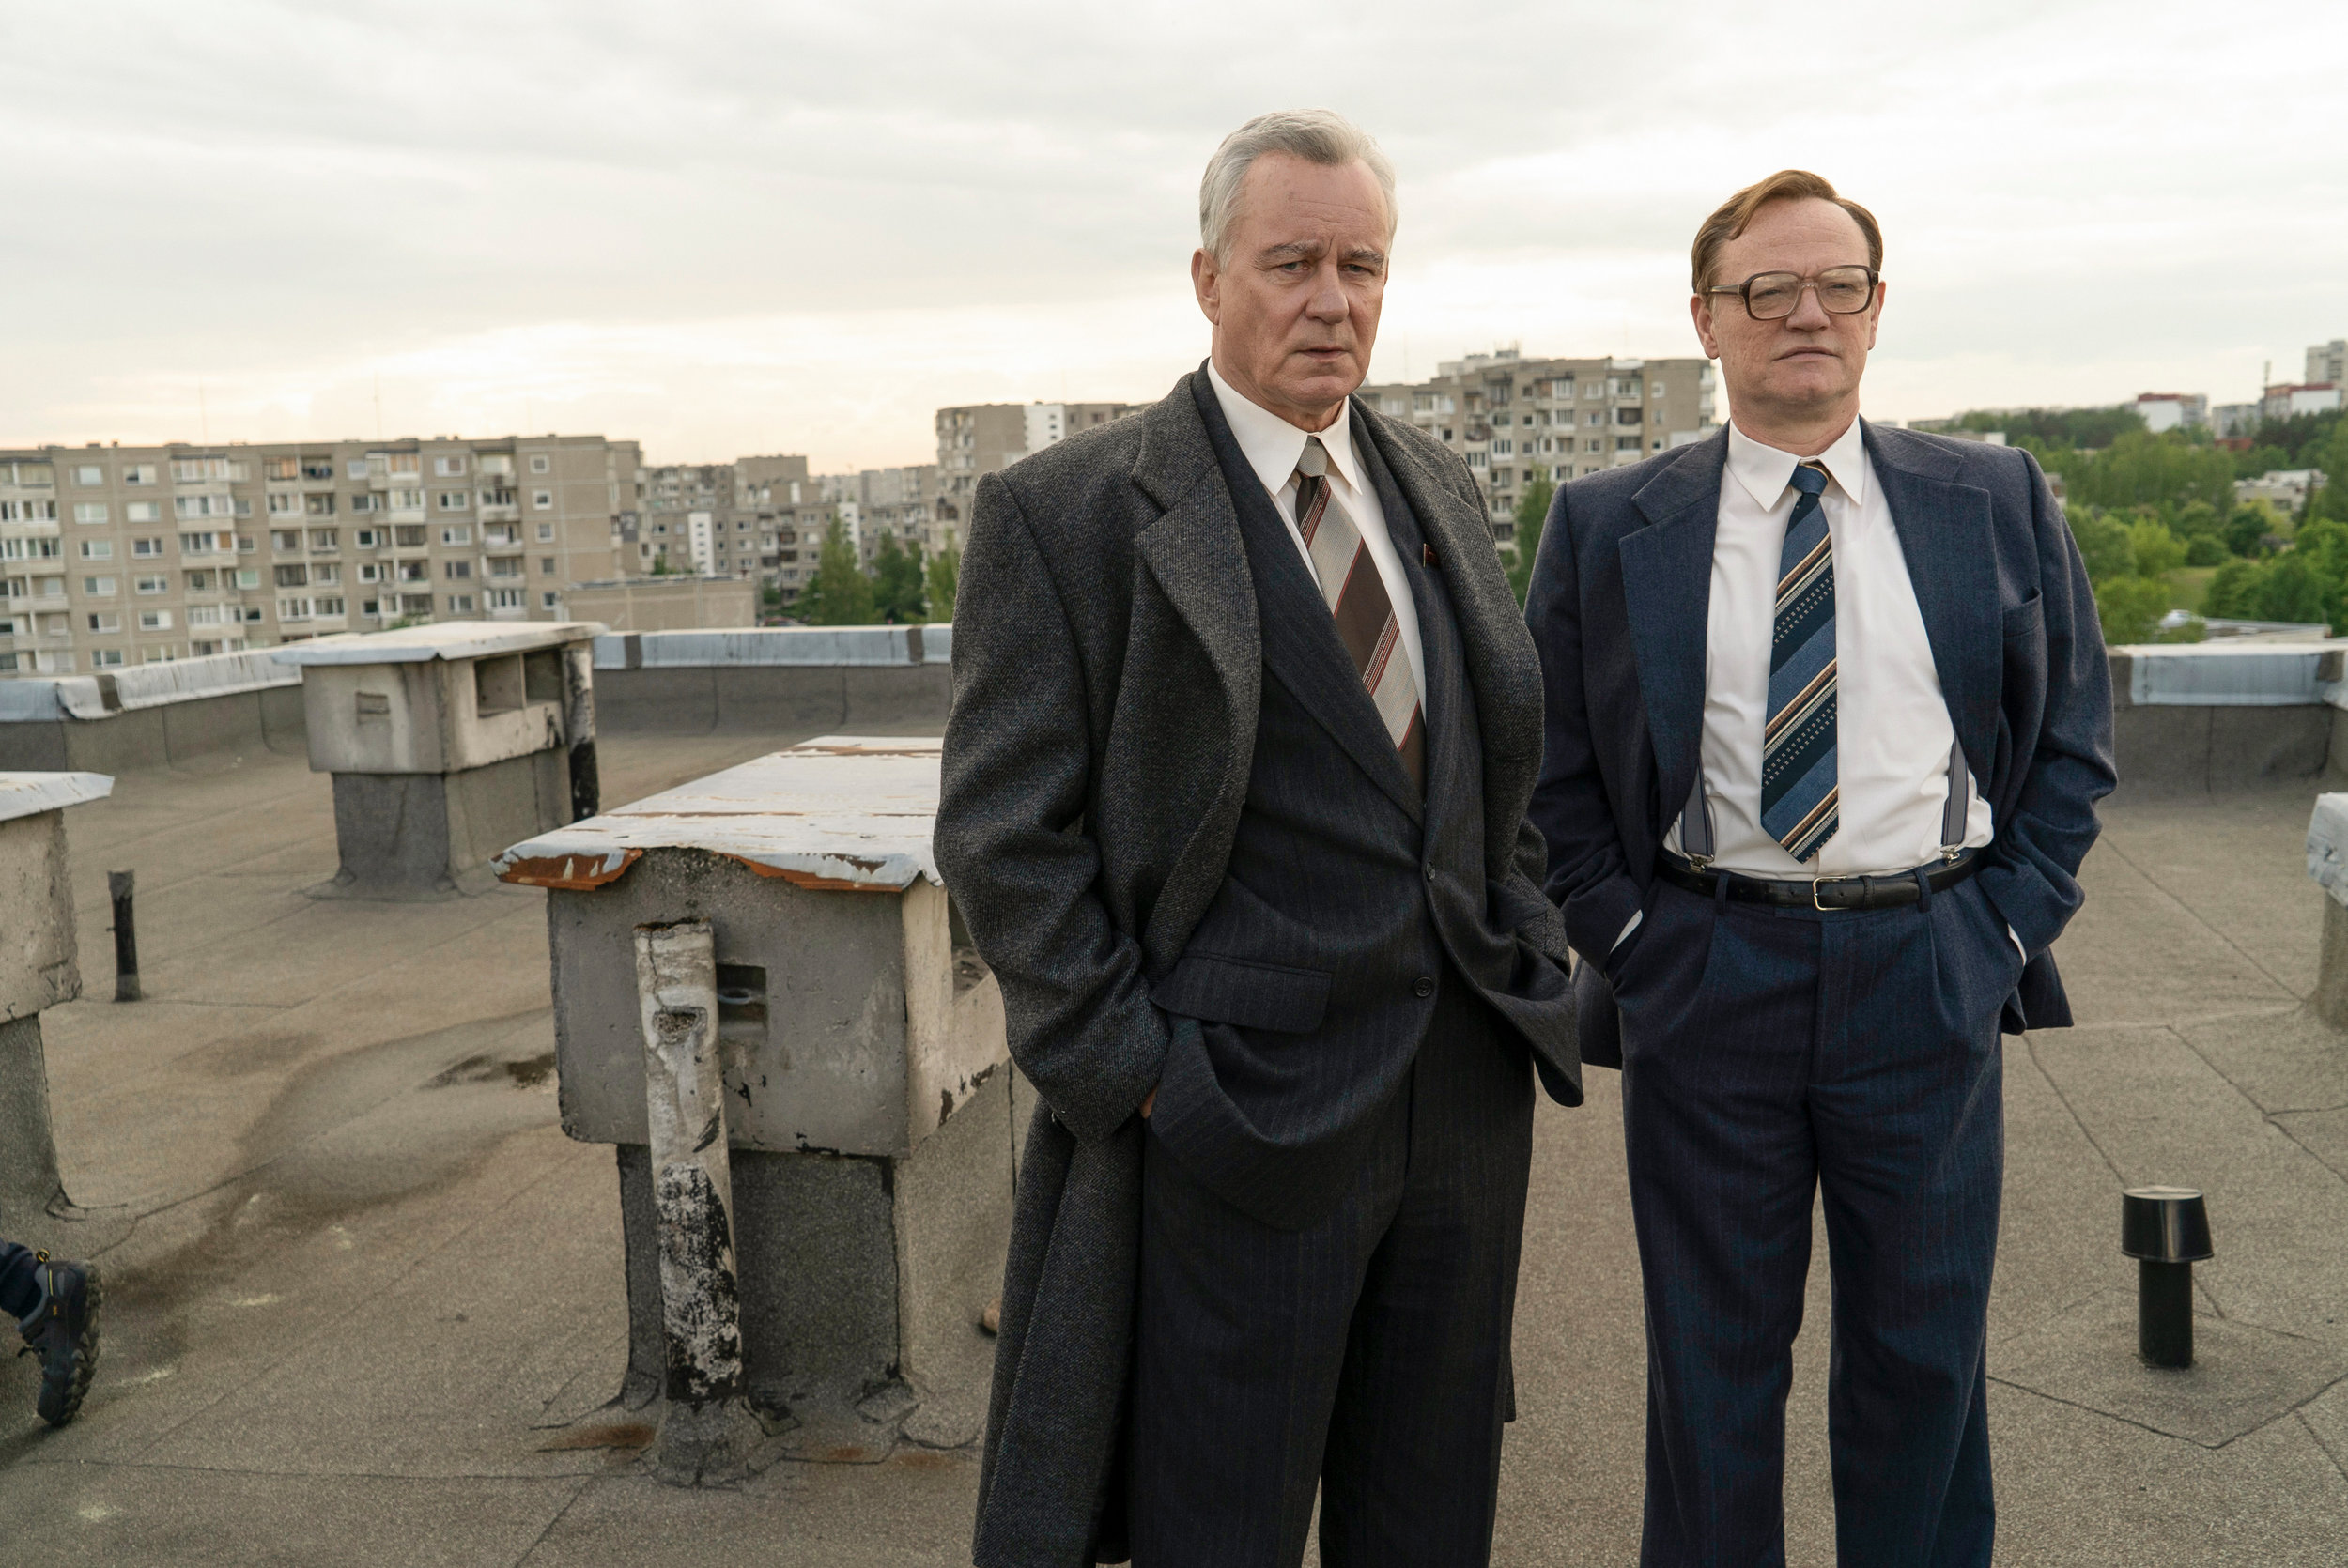 Stellan Skarsgård and Jared Harris Chernobyl